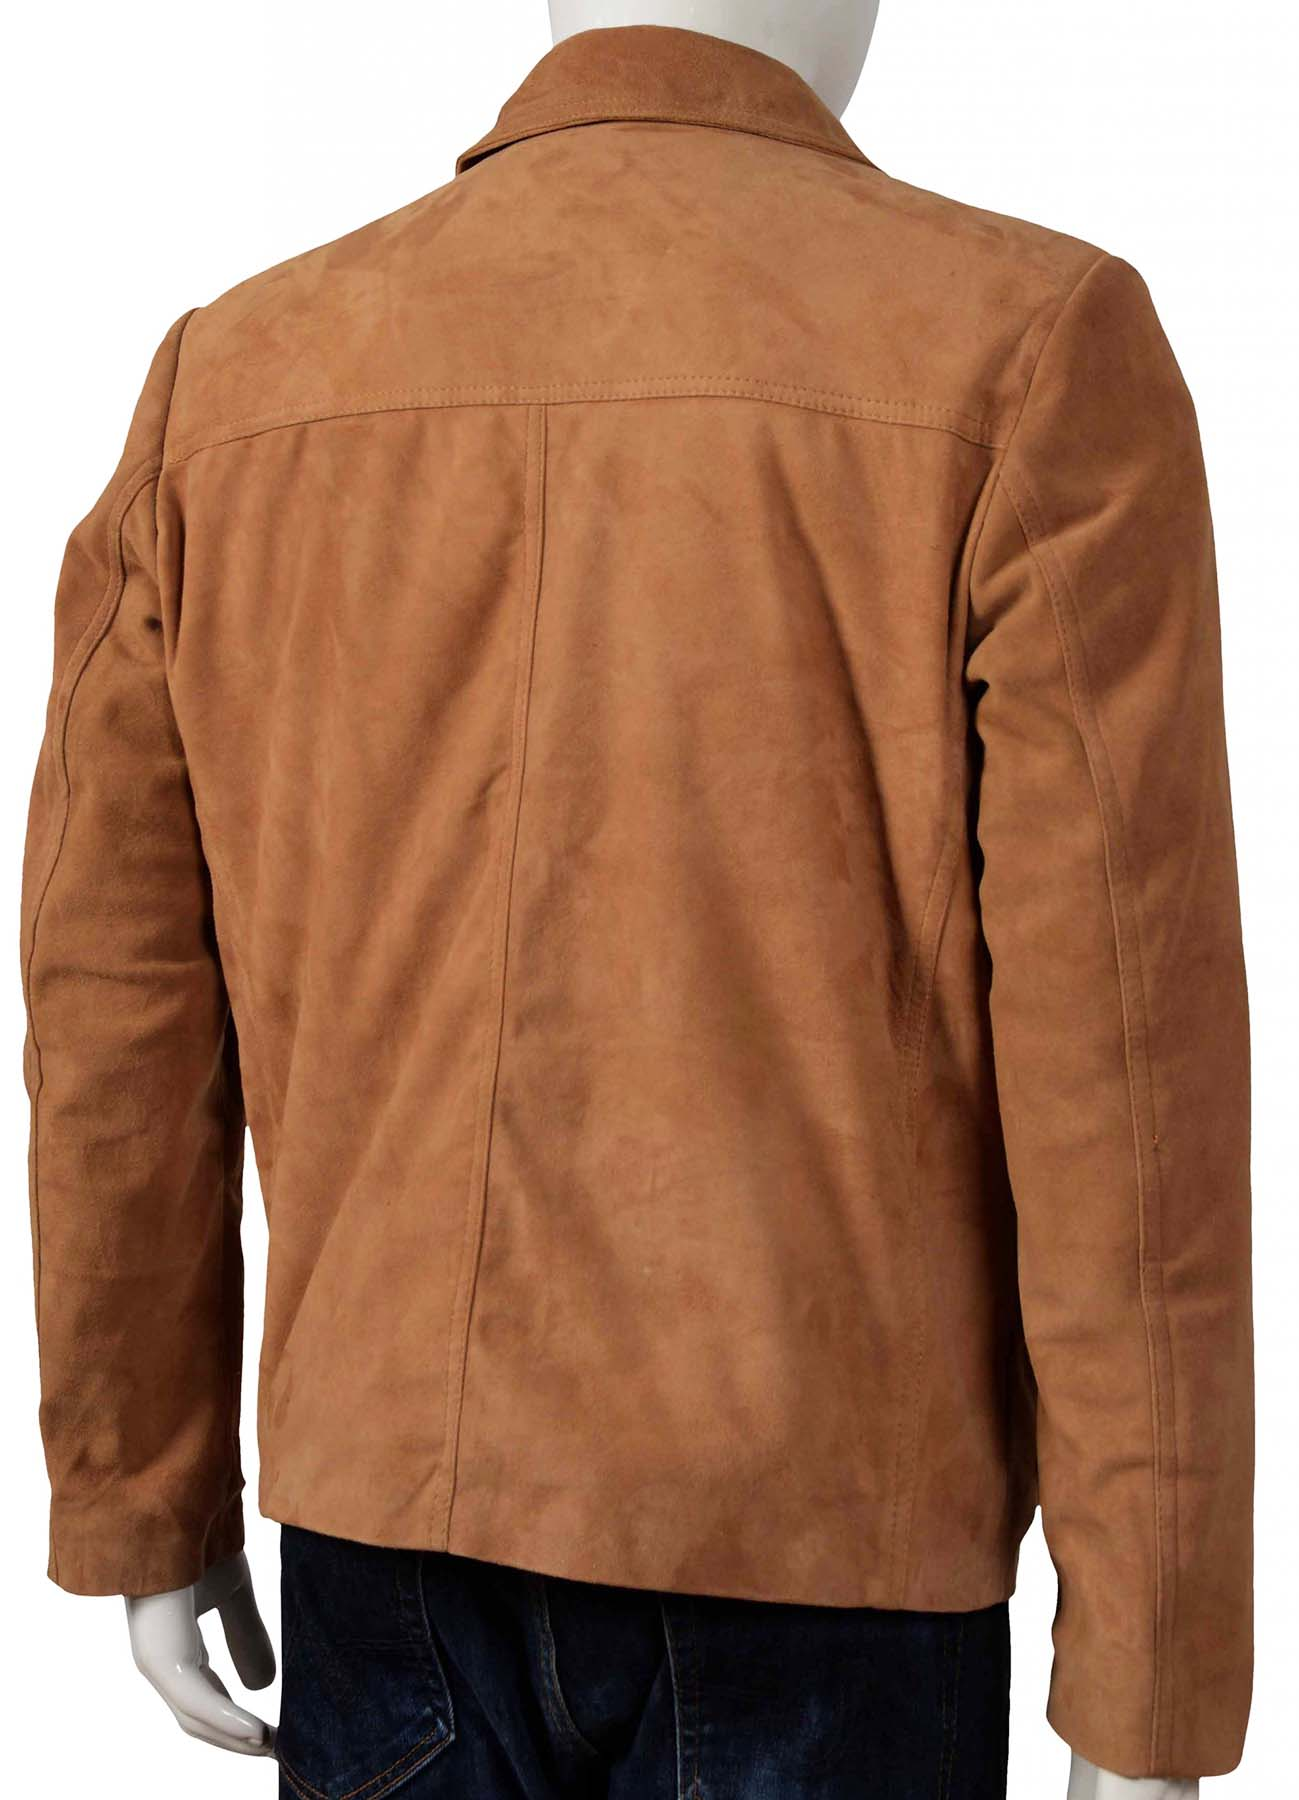 Shirt Style Collar Brown Suede Leather Jacket for Men